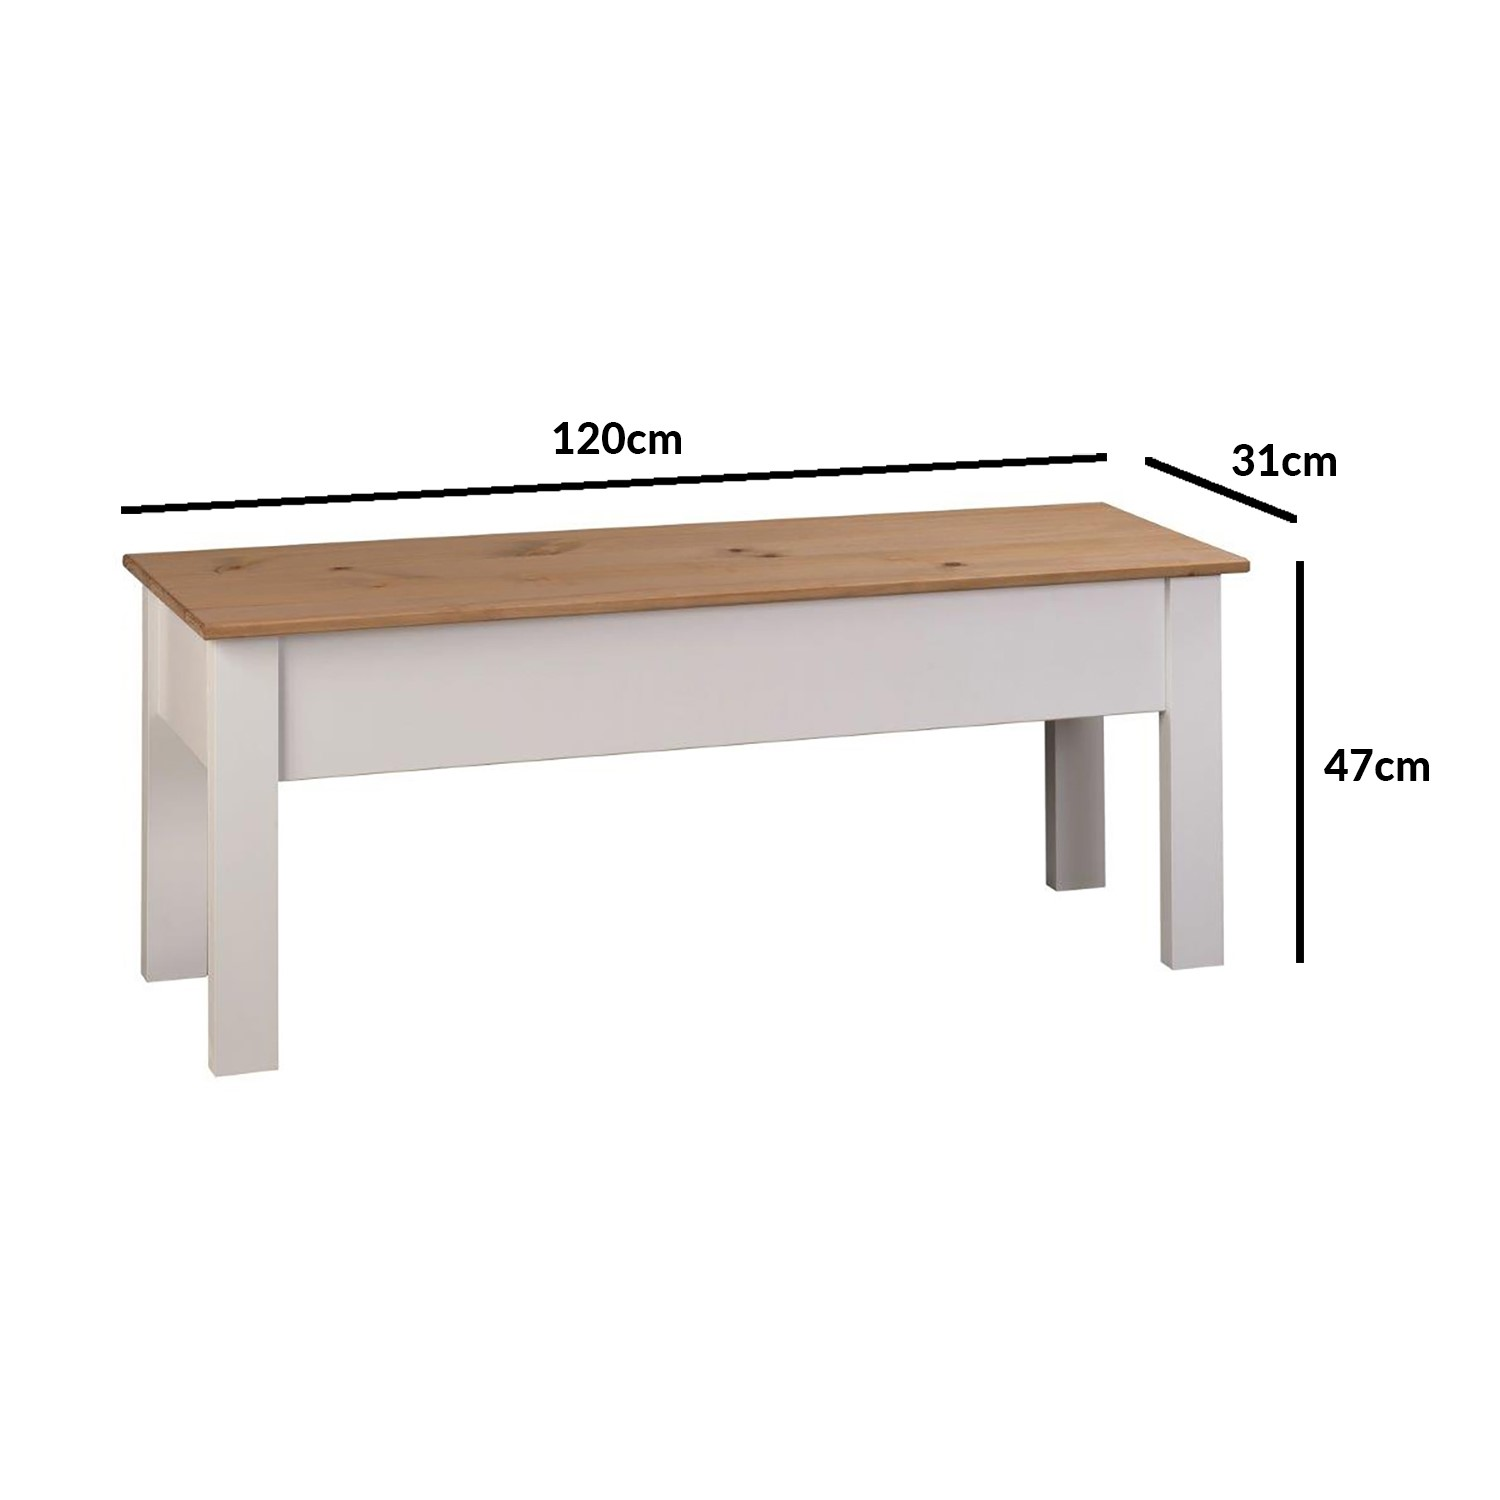 Grey Solid Wood Dining Bench with Storage   Seats 9   Emerson